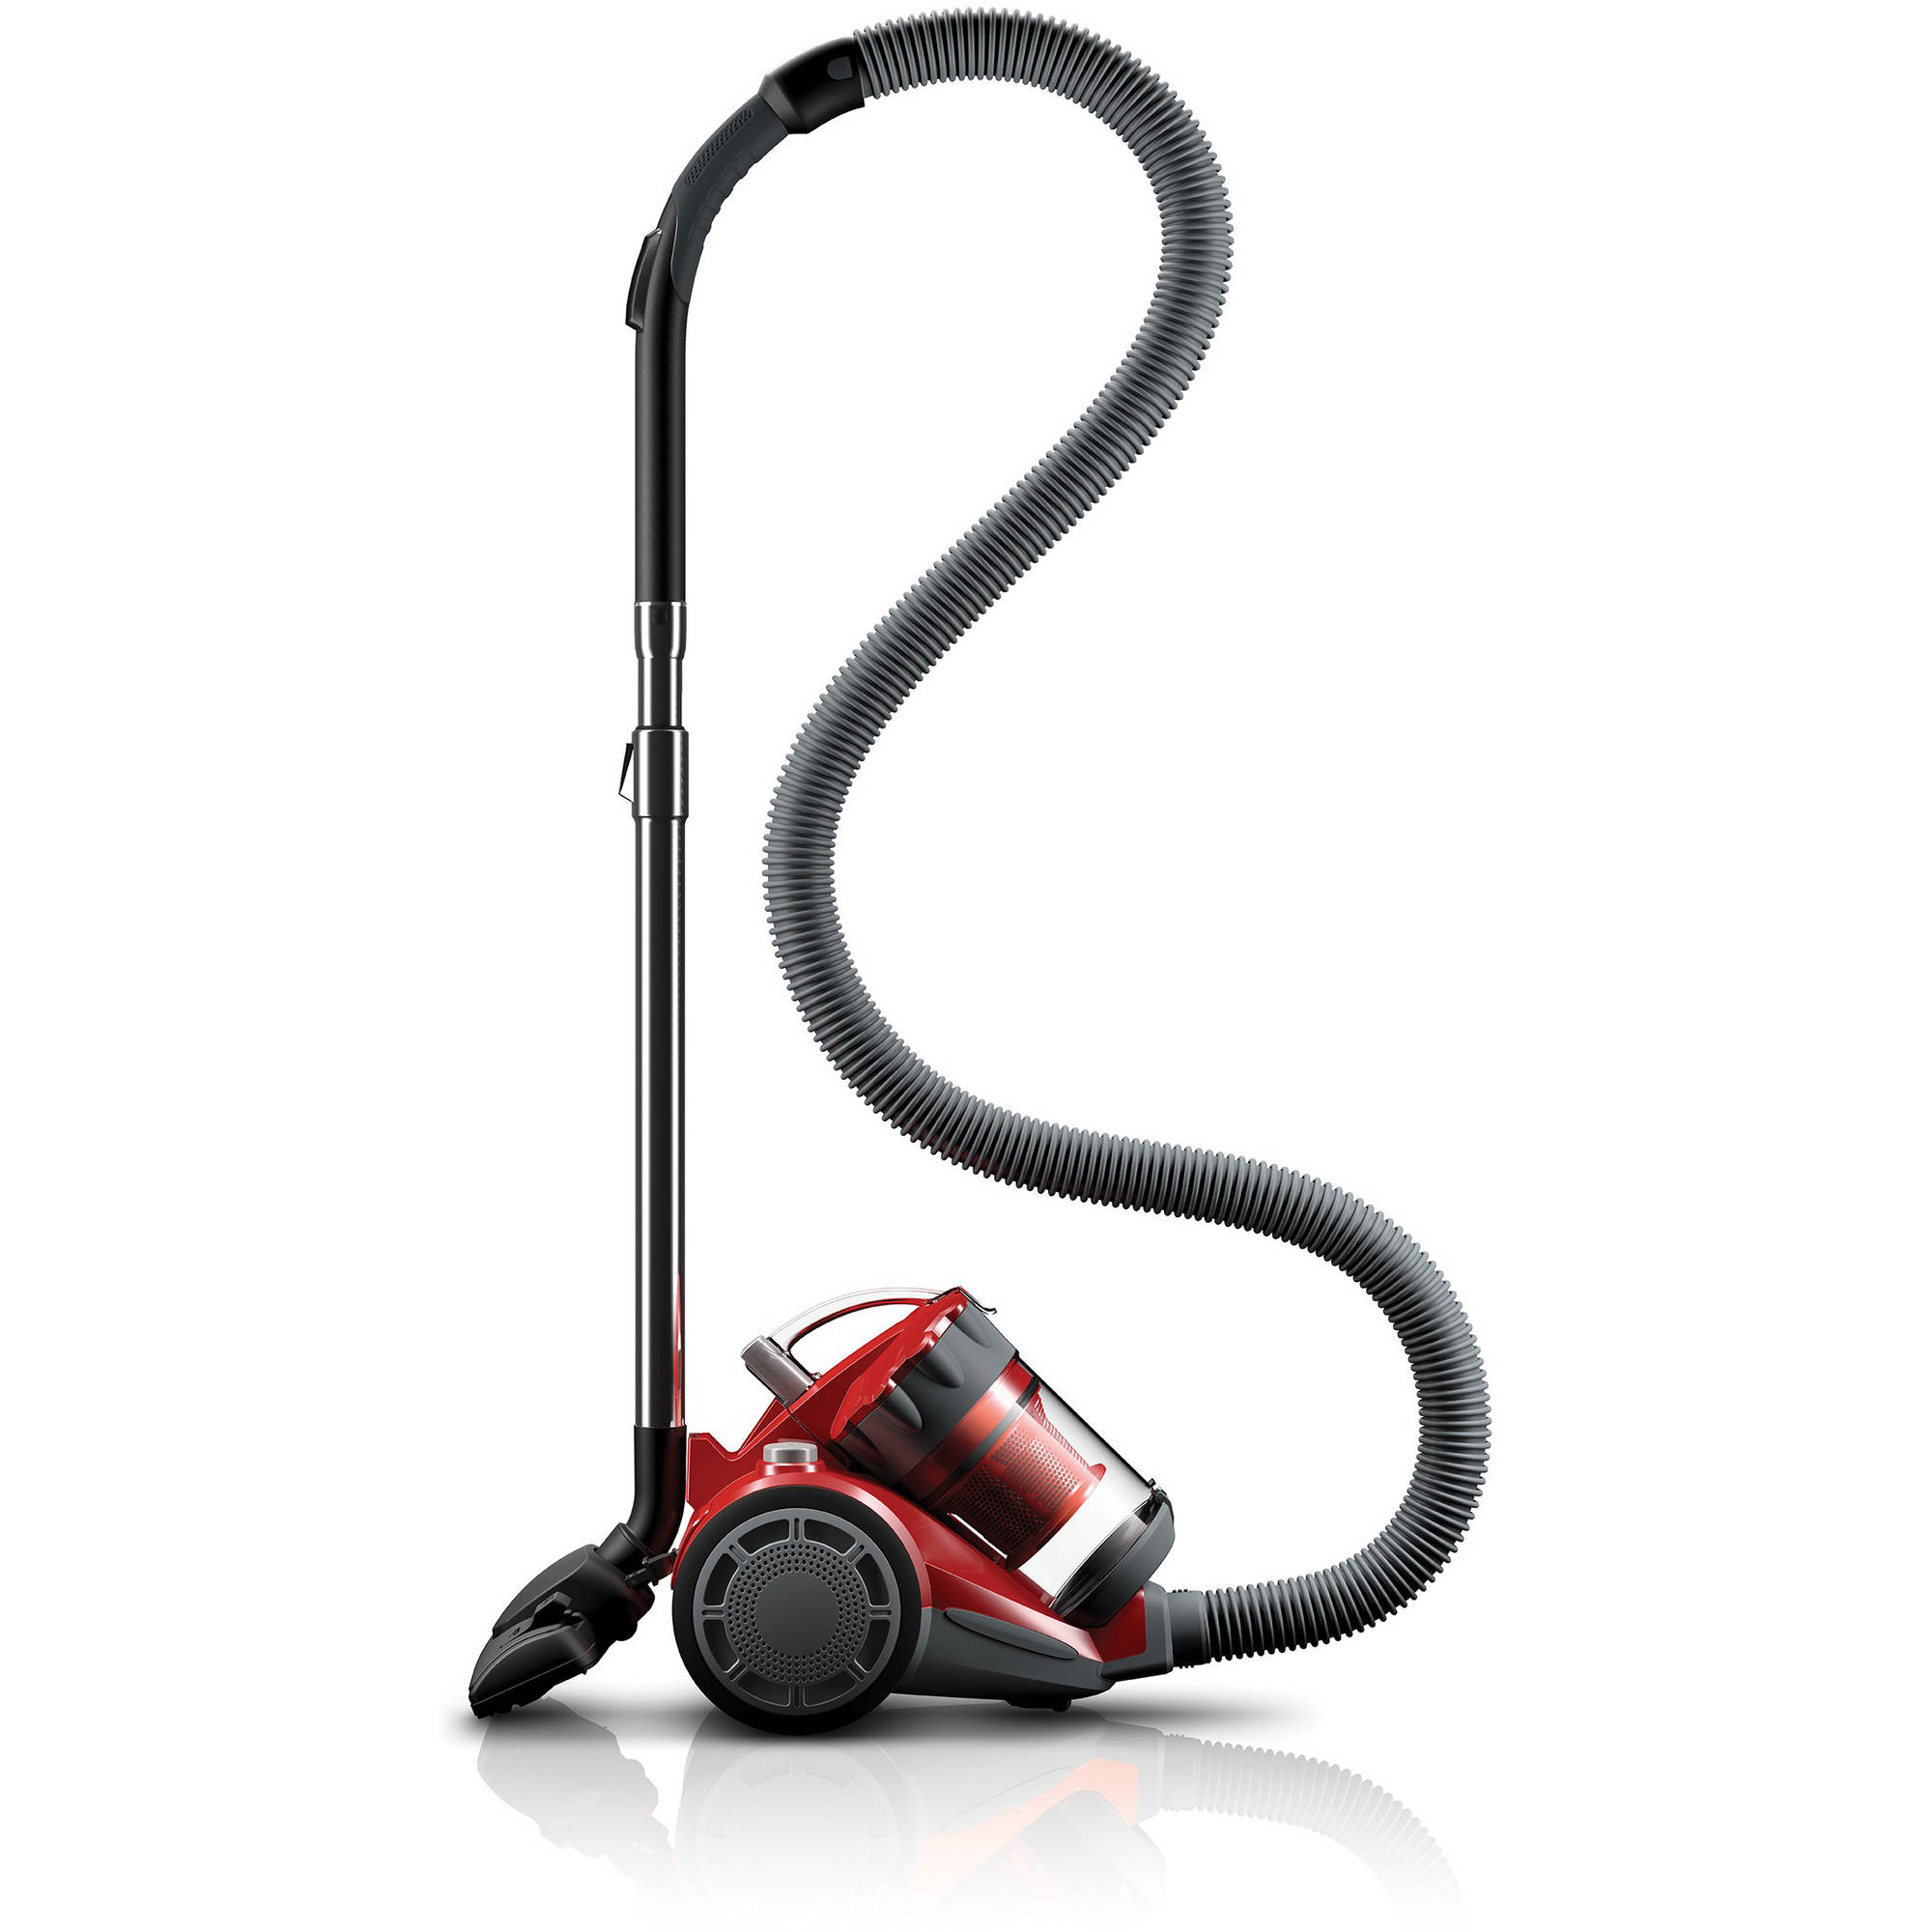 Dirt Devil Feather Lite Lightweight Cyclonic Canister Vacuum, 1.0 CT